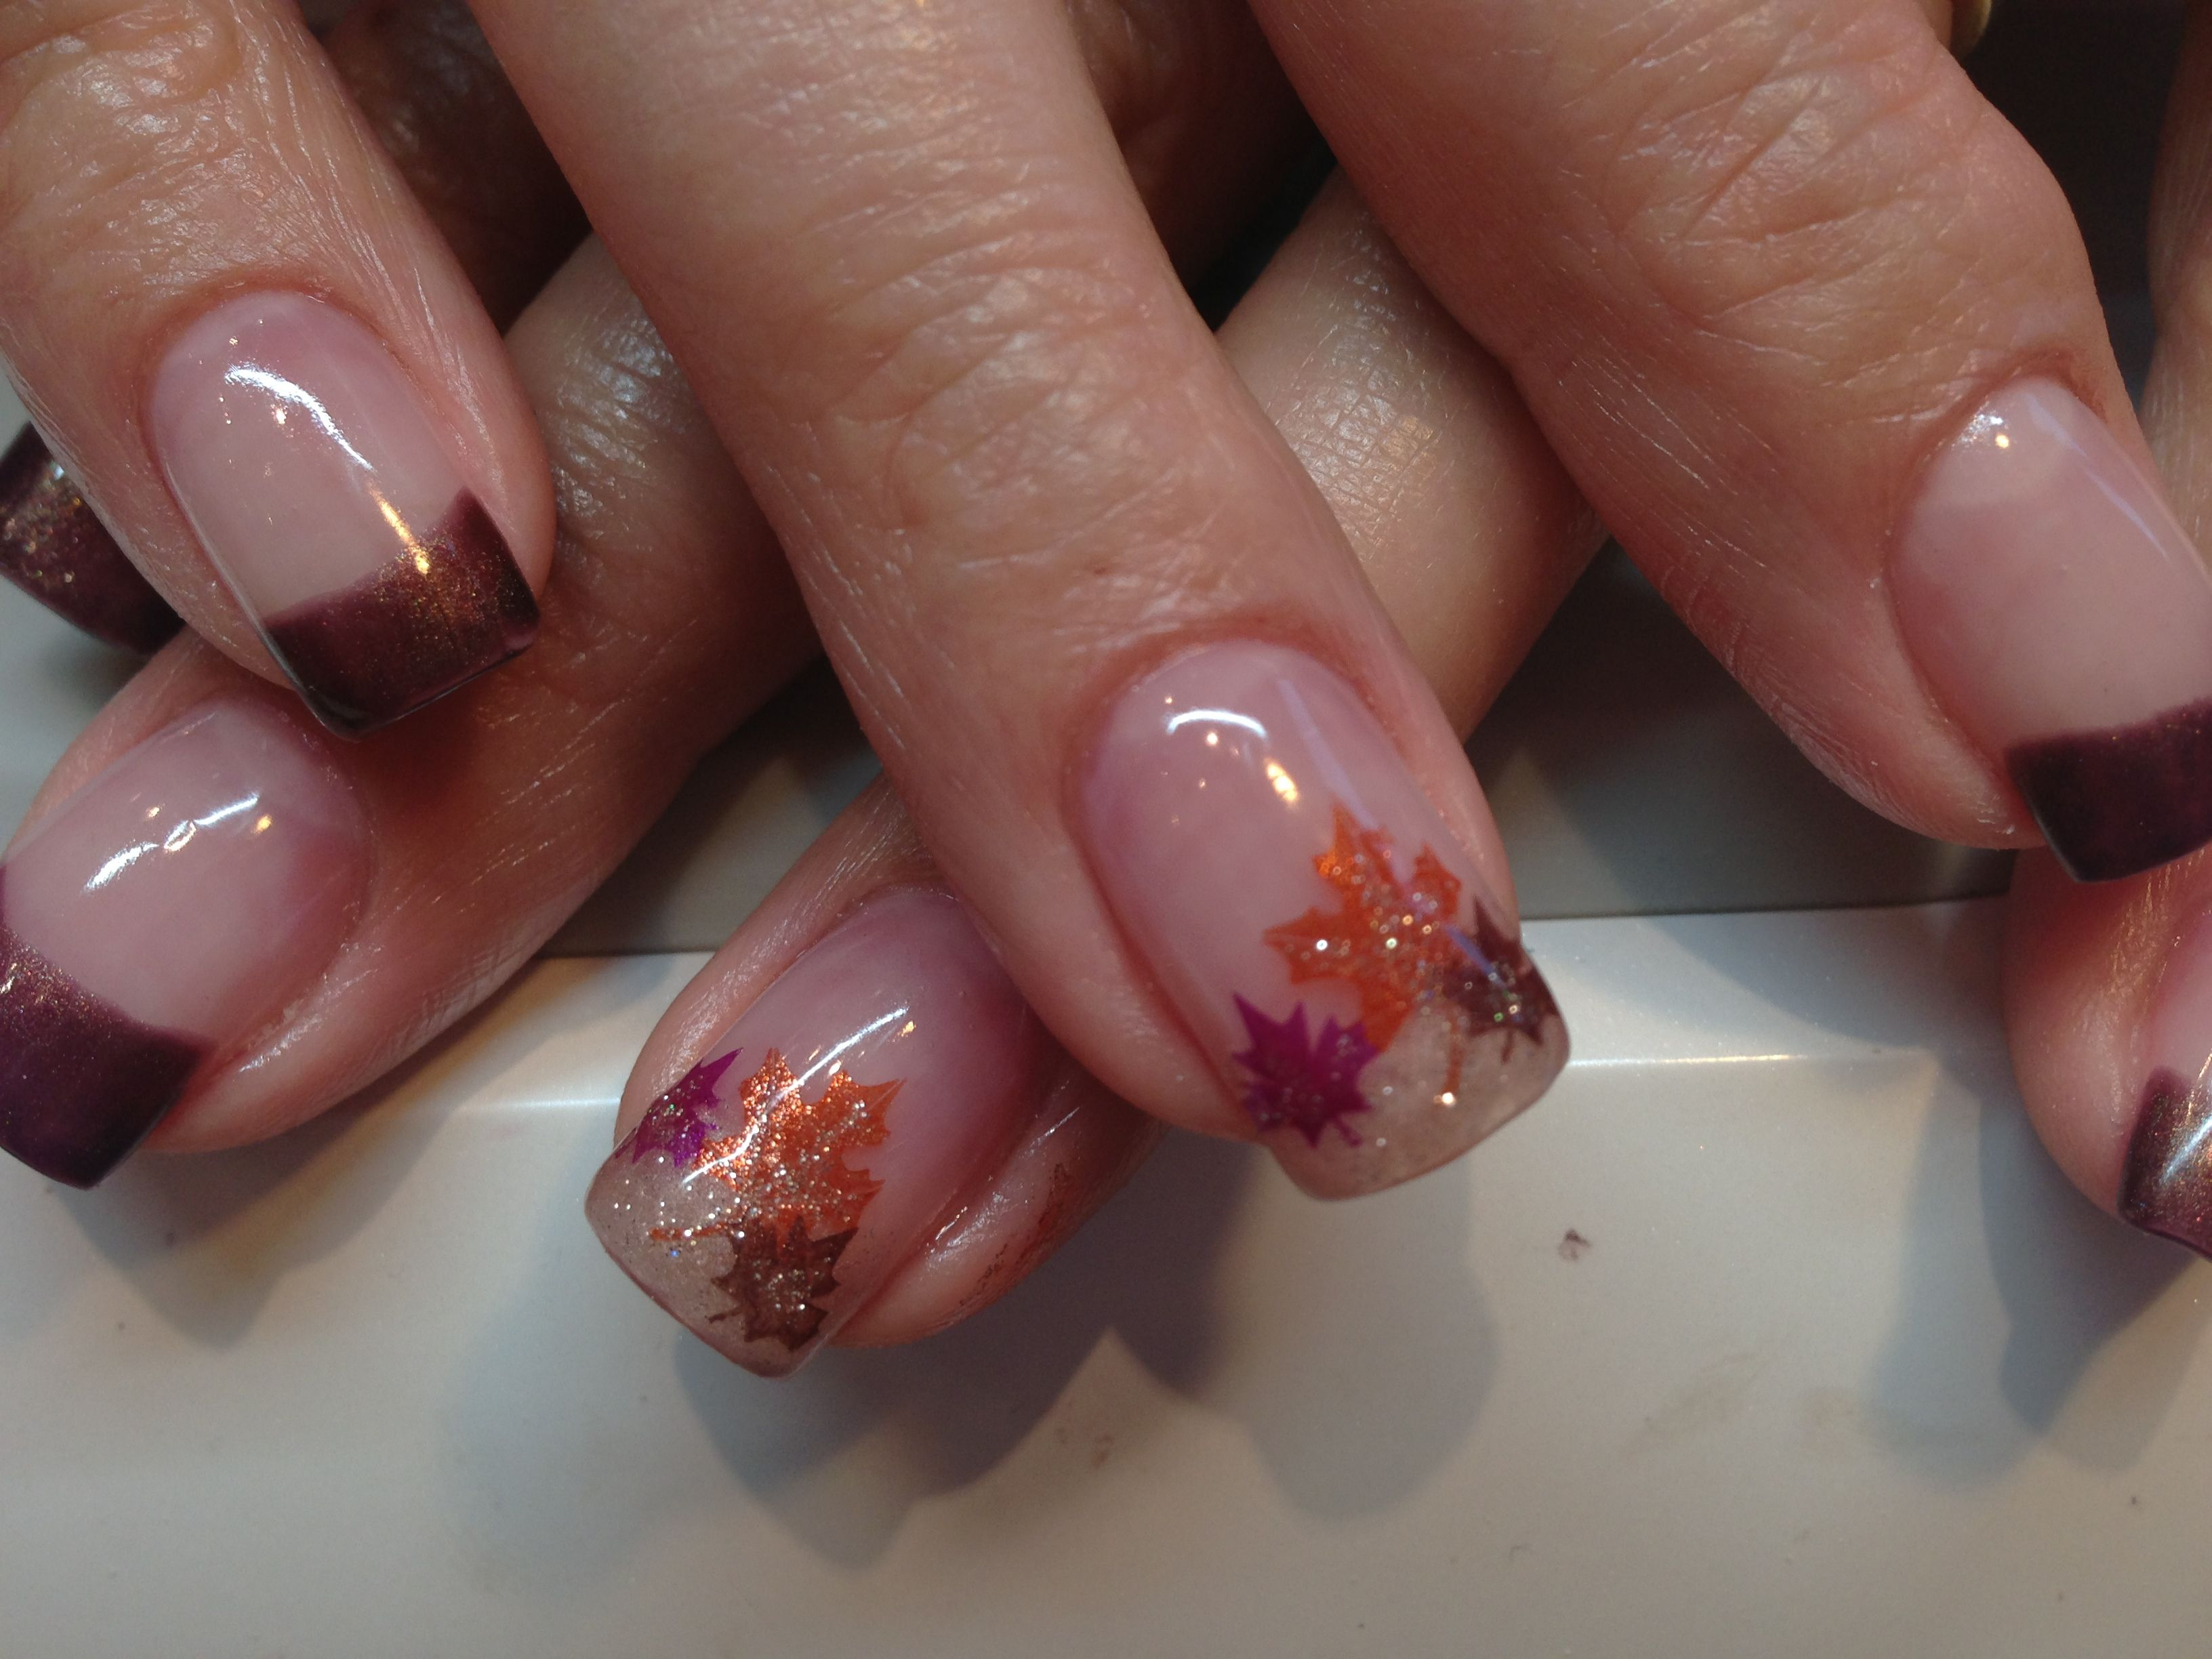 Autumn leaves nail art on a golden french manicure ♡ | Nails ...